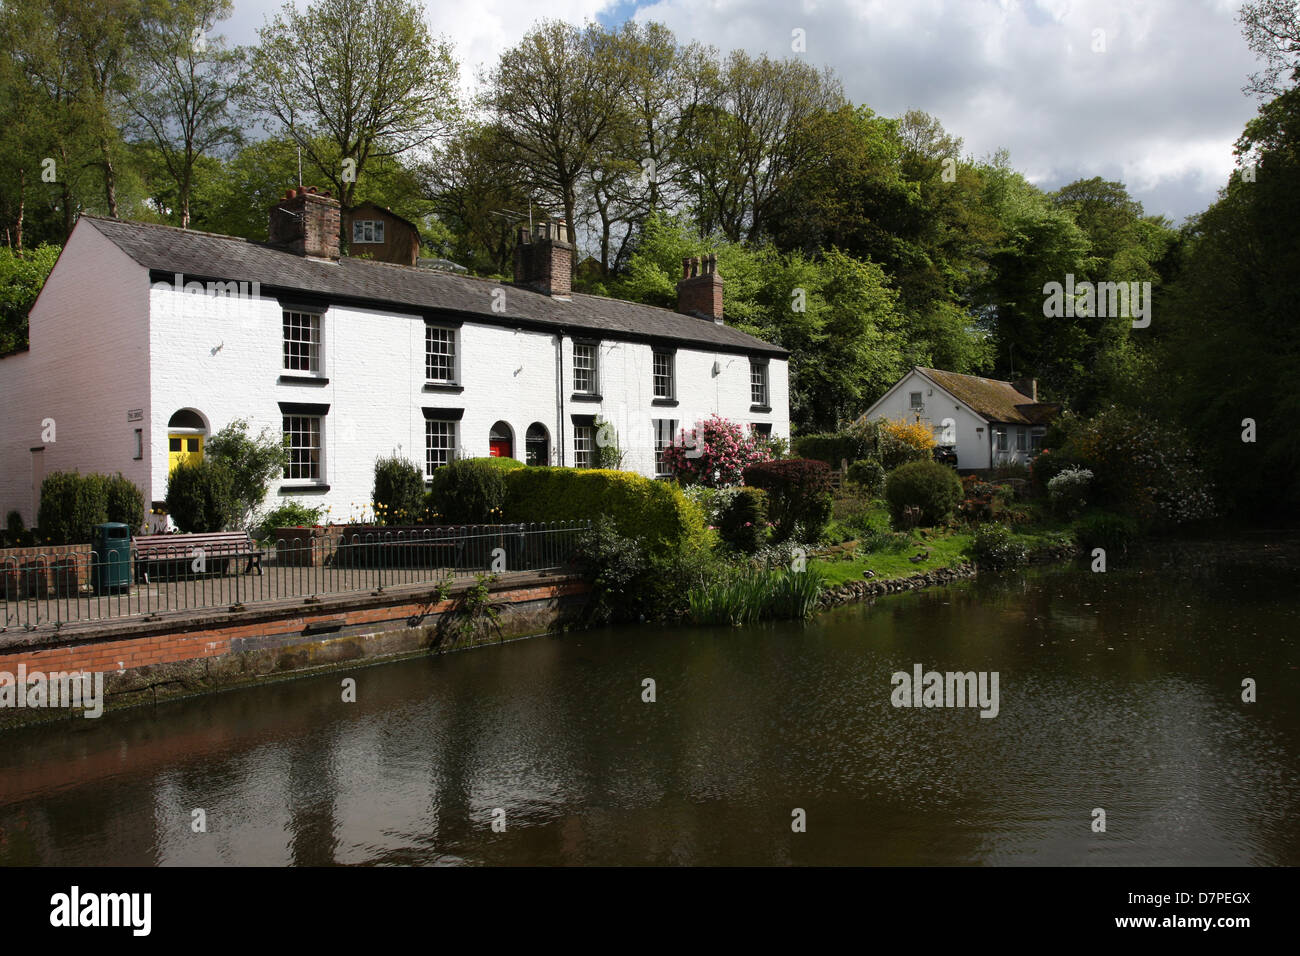 An attractive row of cottages in the Cheshire village of Lymm, Cheshire England. - Stock Image